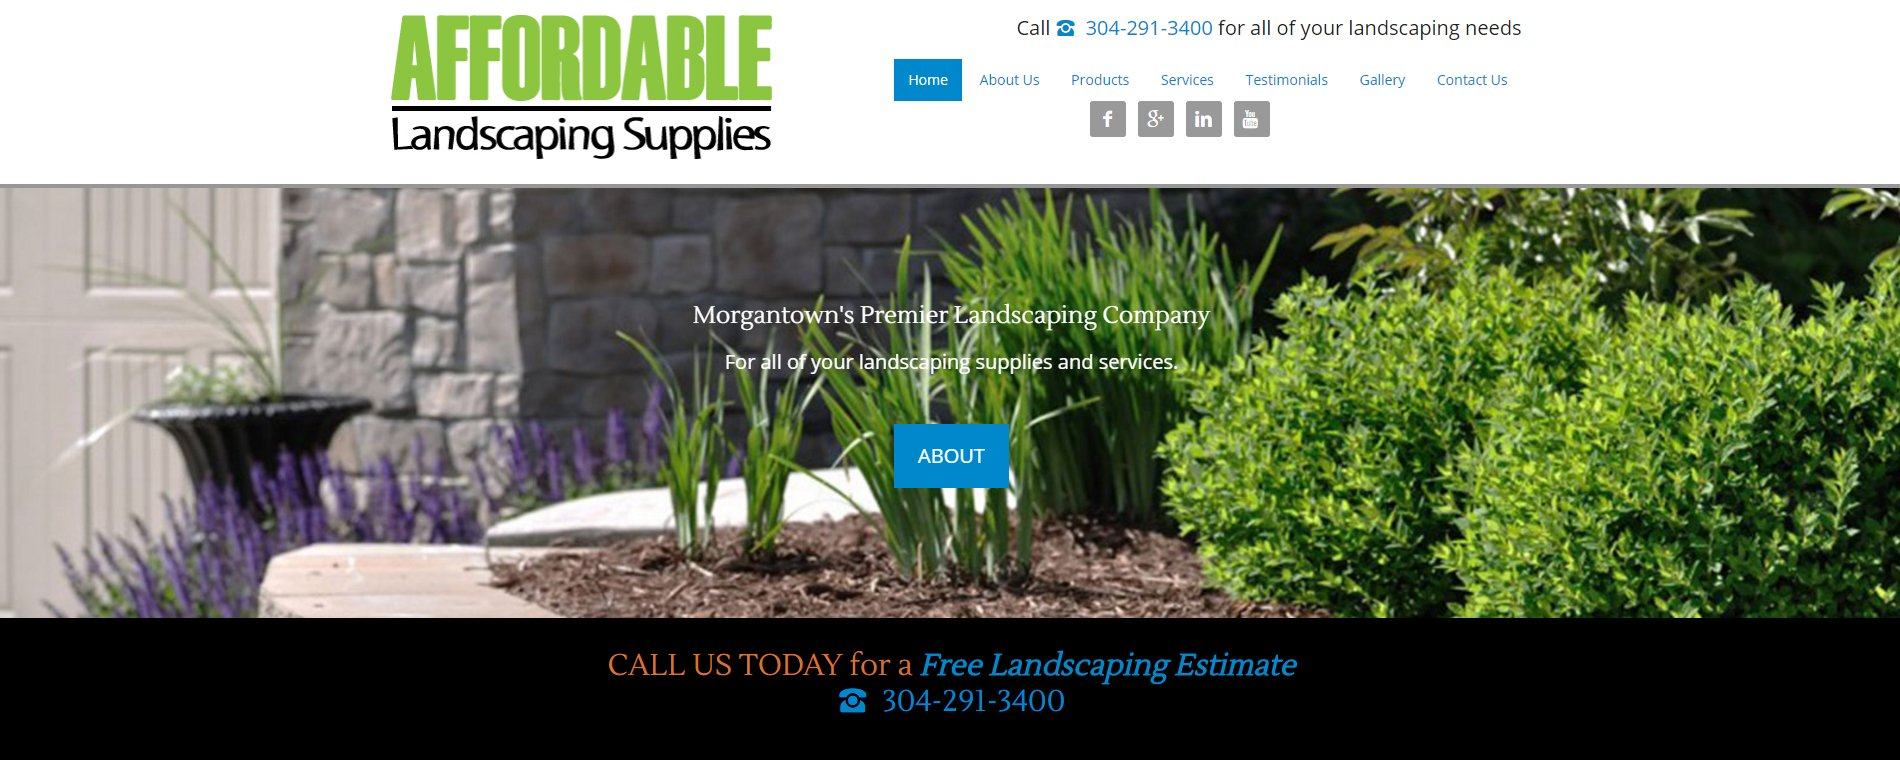 Suncoast Media Pros - Affordable Landscaping Supplies Morgantown, West Virginia